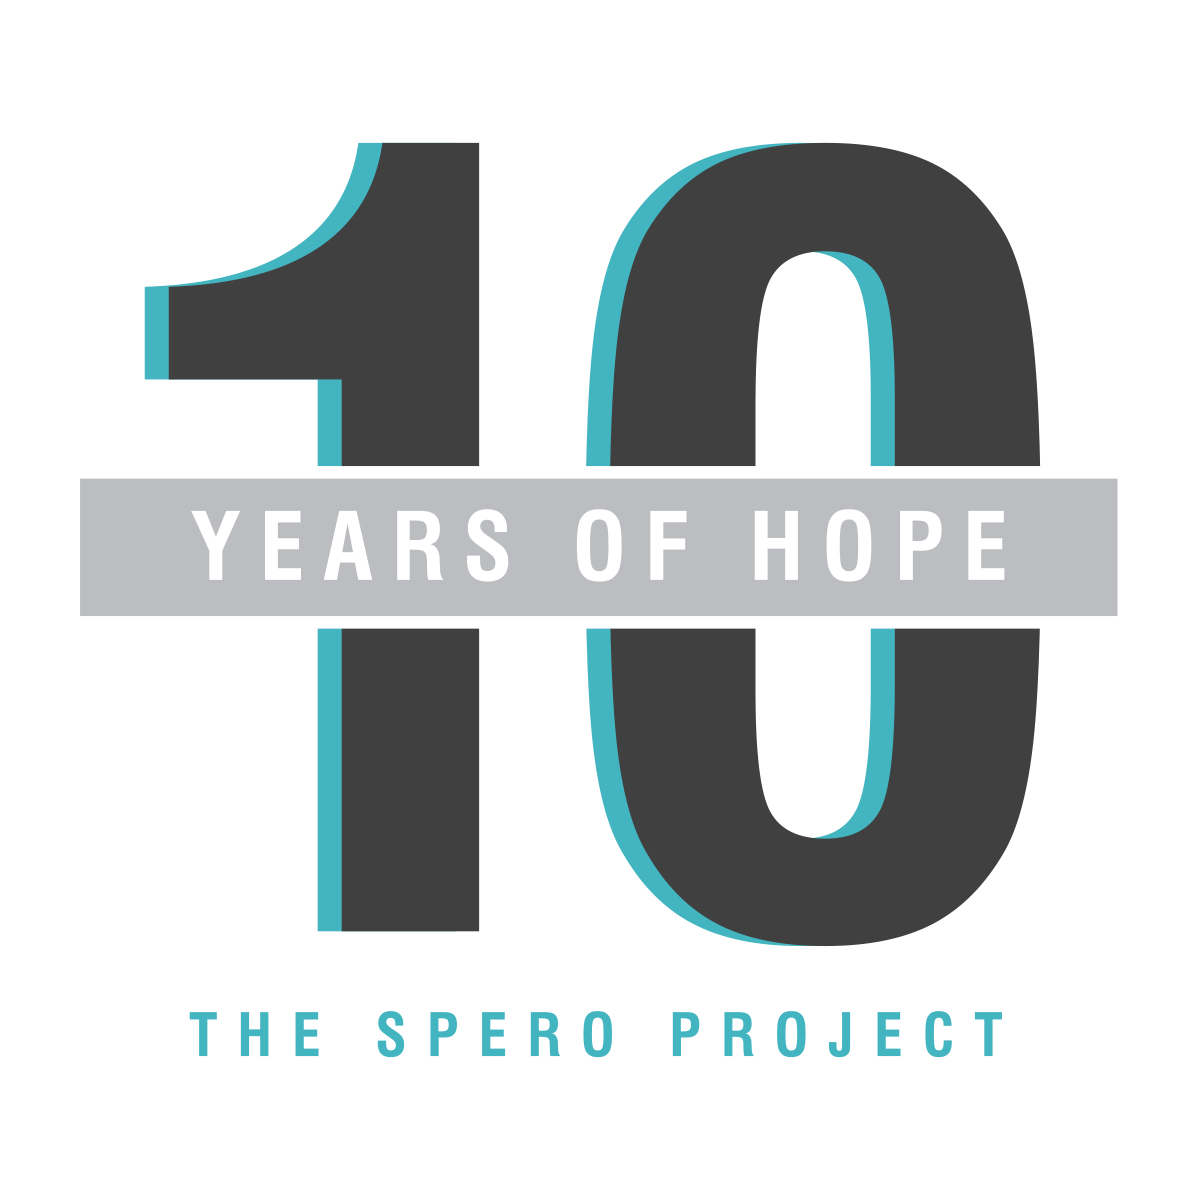 10 years of hope